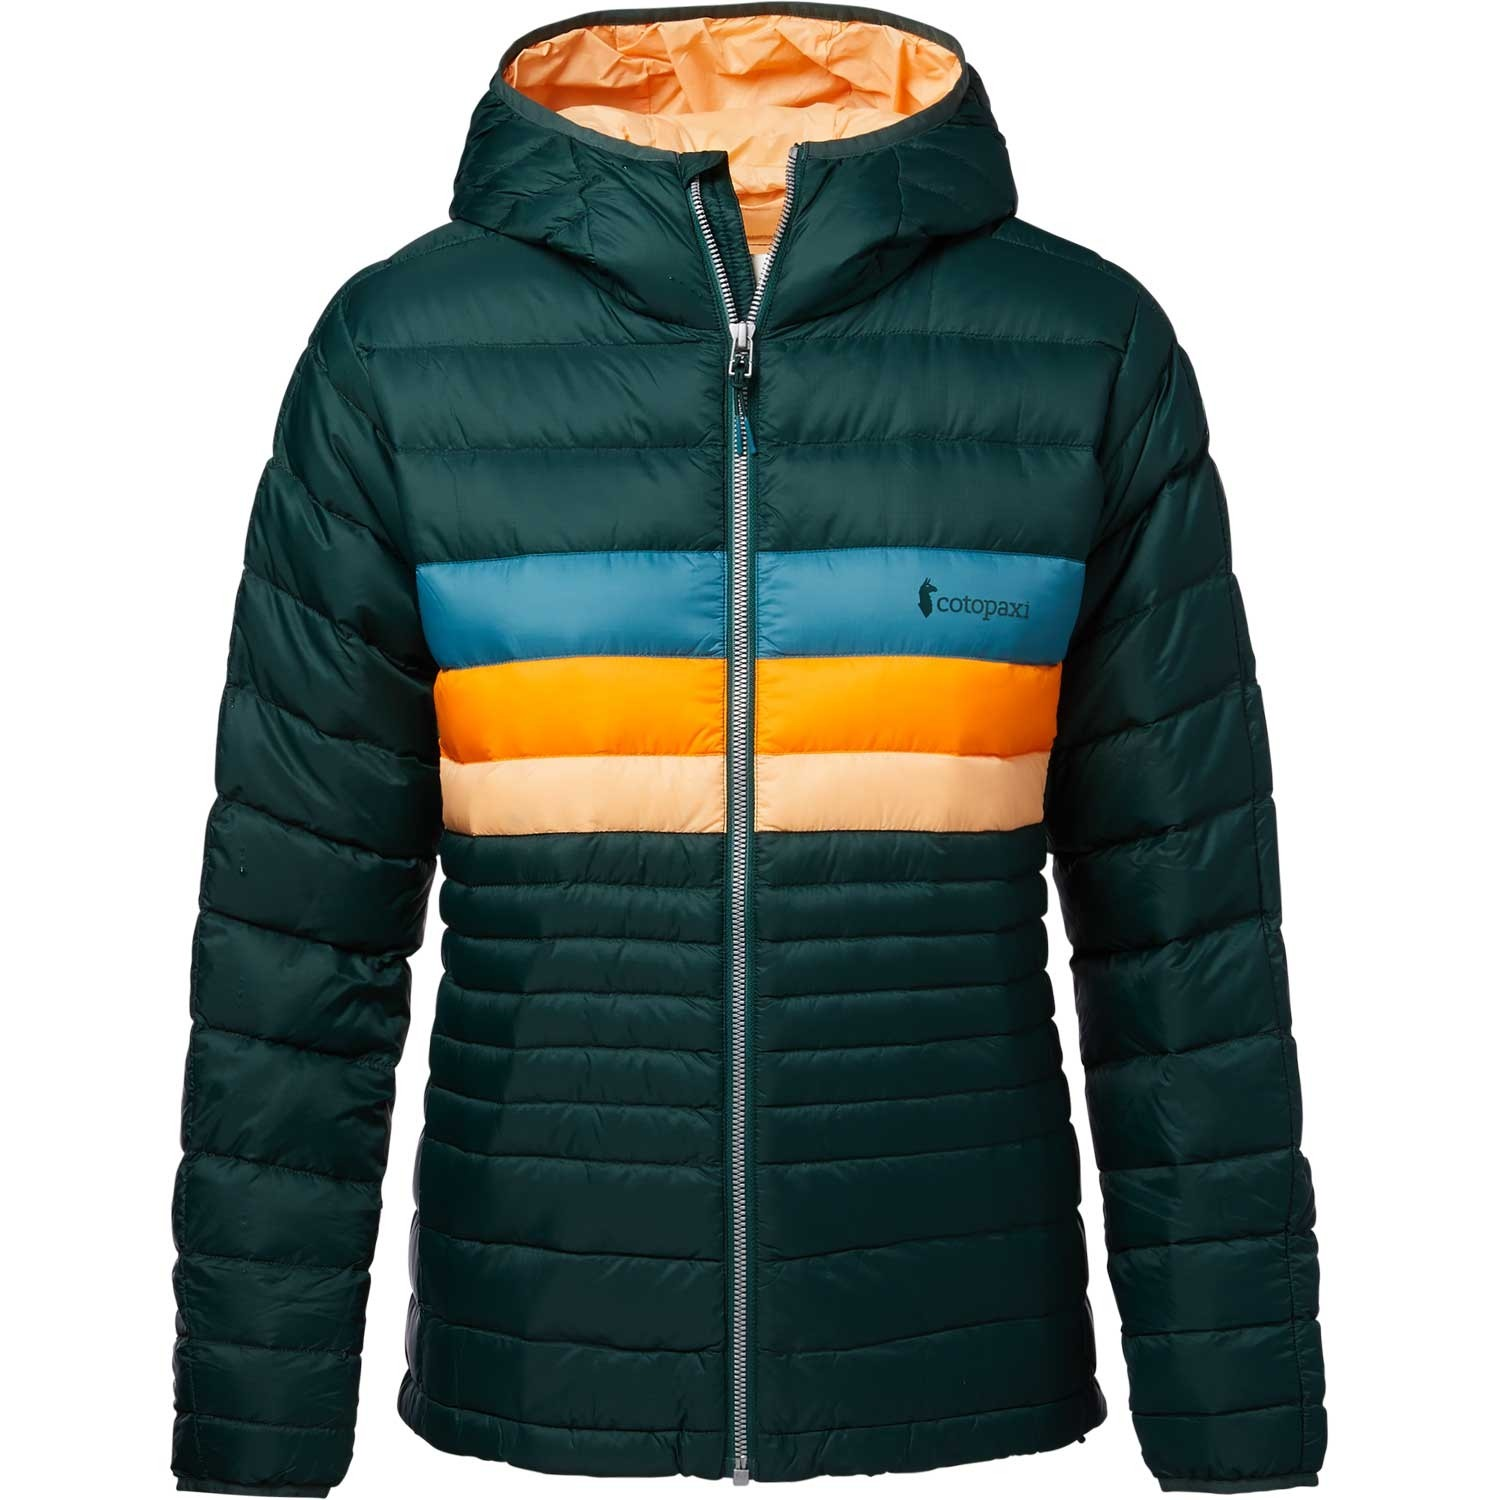 Cotopaxi Fuego Down Hooded Jacket - Women's - Dark Forest Stripes